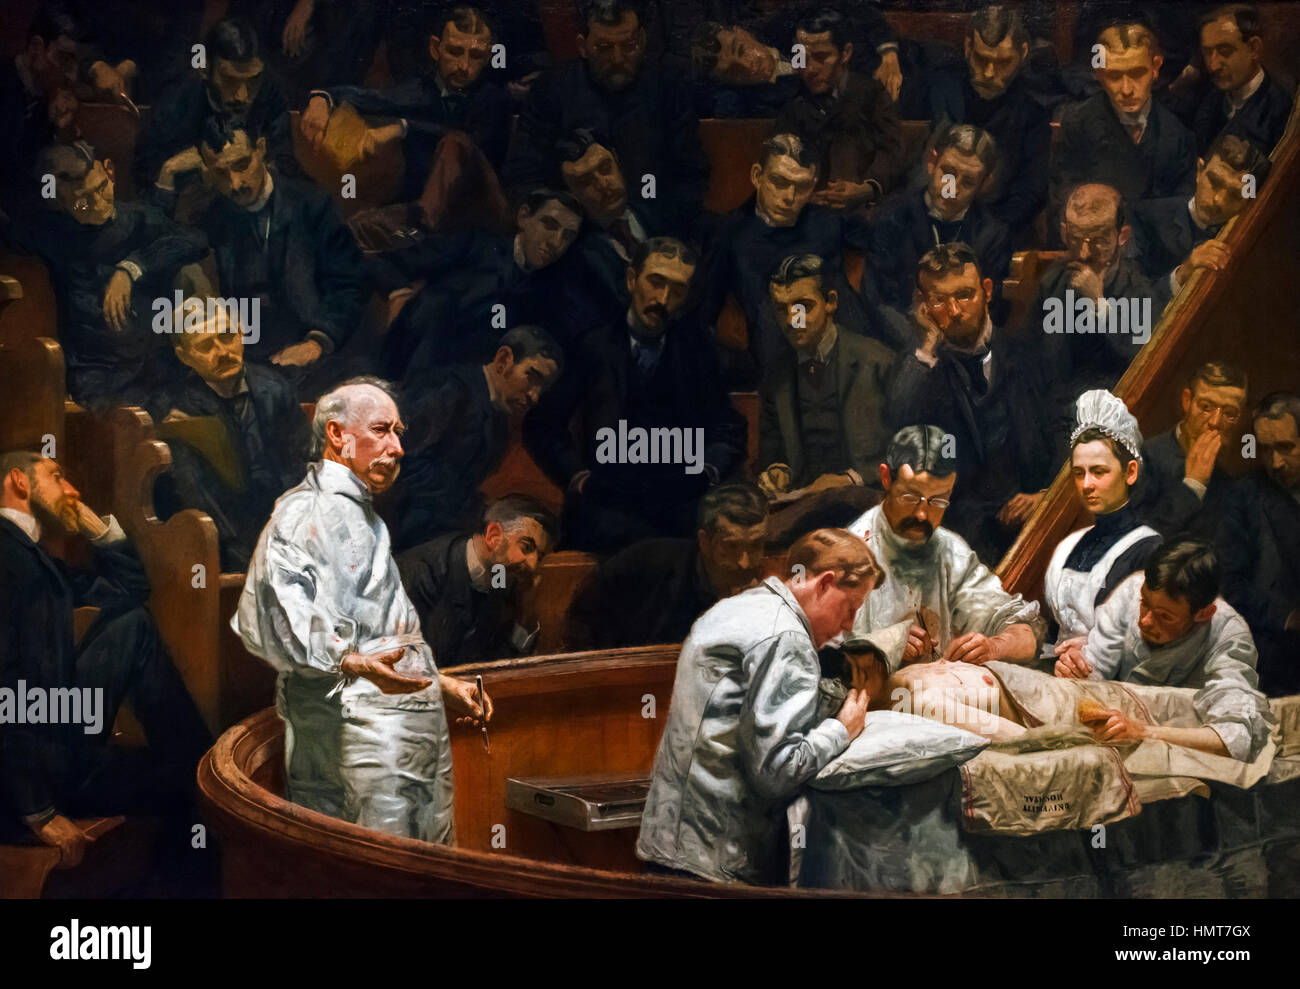 Thomas Eakins (1844-1916) 'The Agnew Clinic', oil on canvas, 1889 - Stock Image